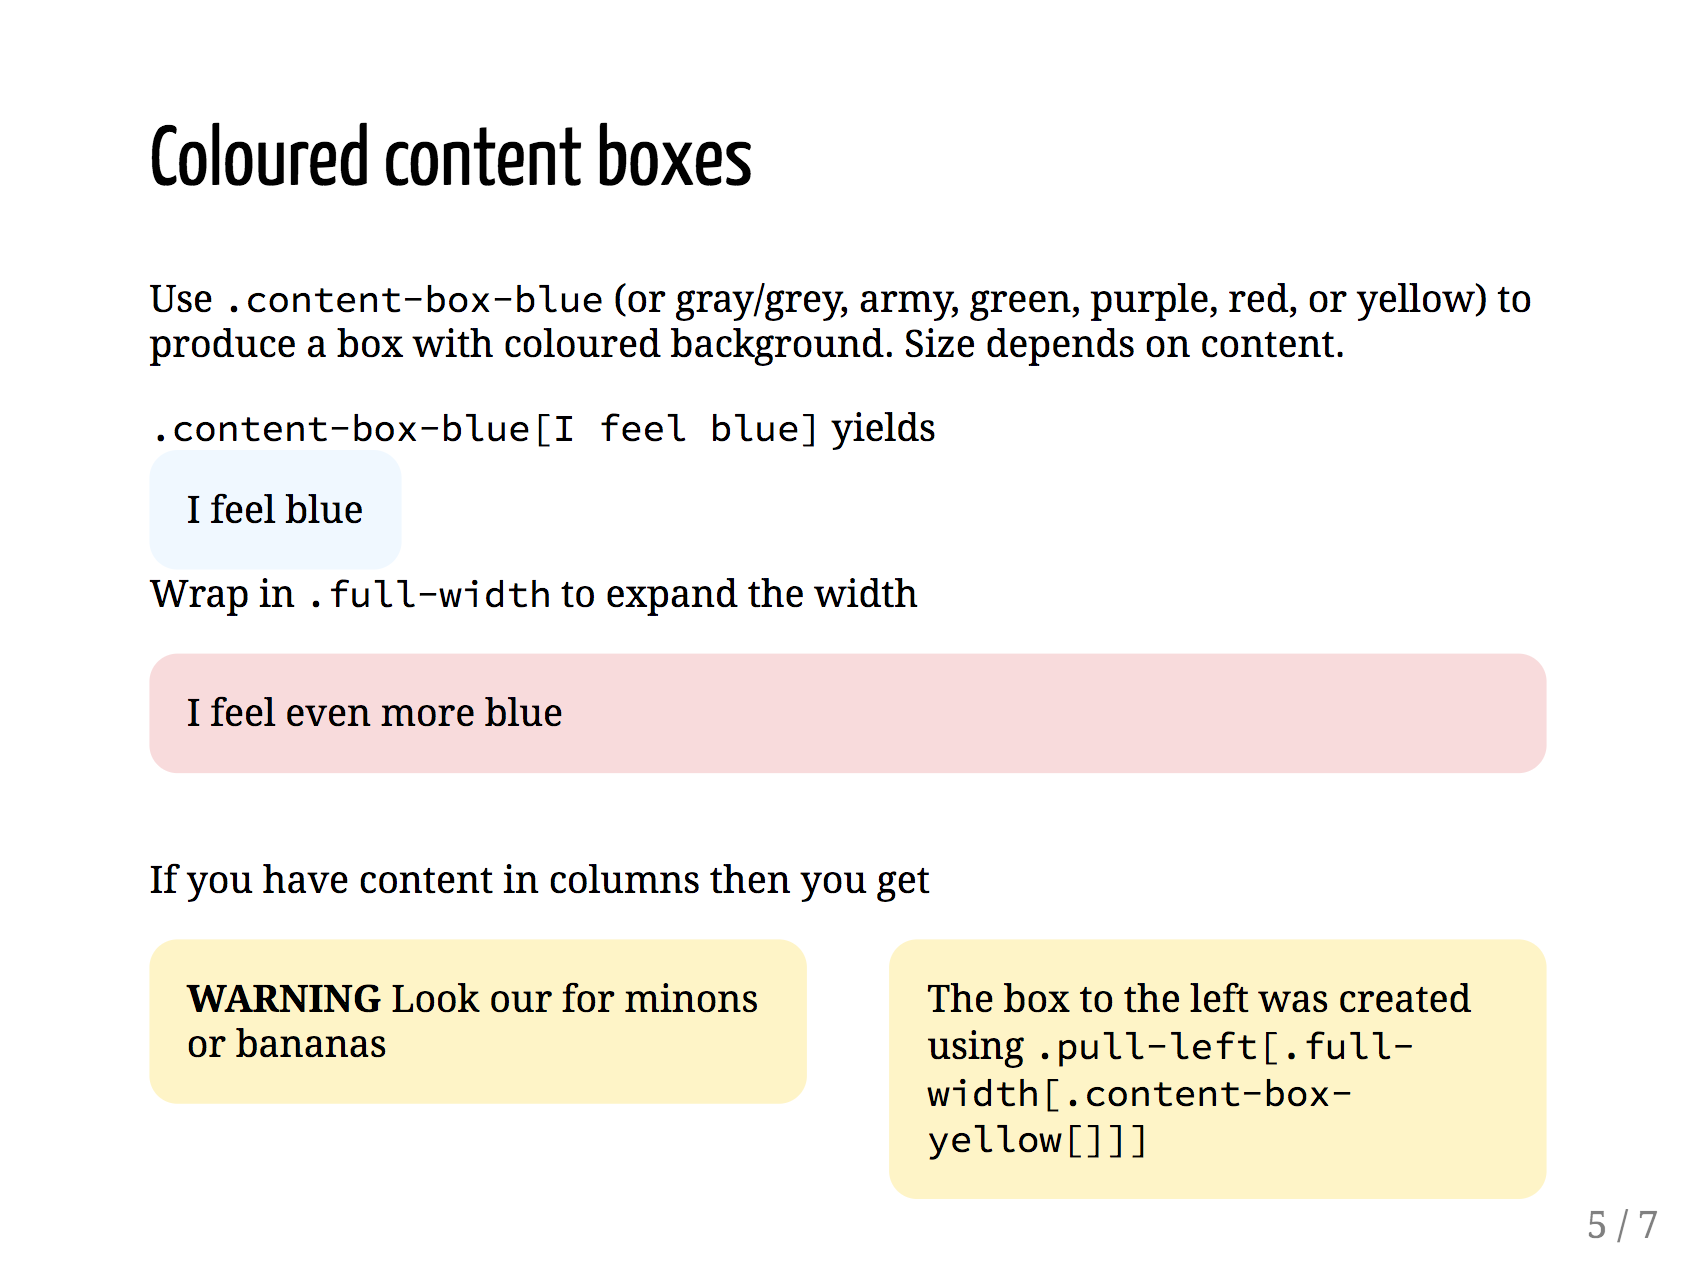 colored content boxes